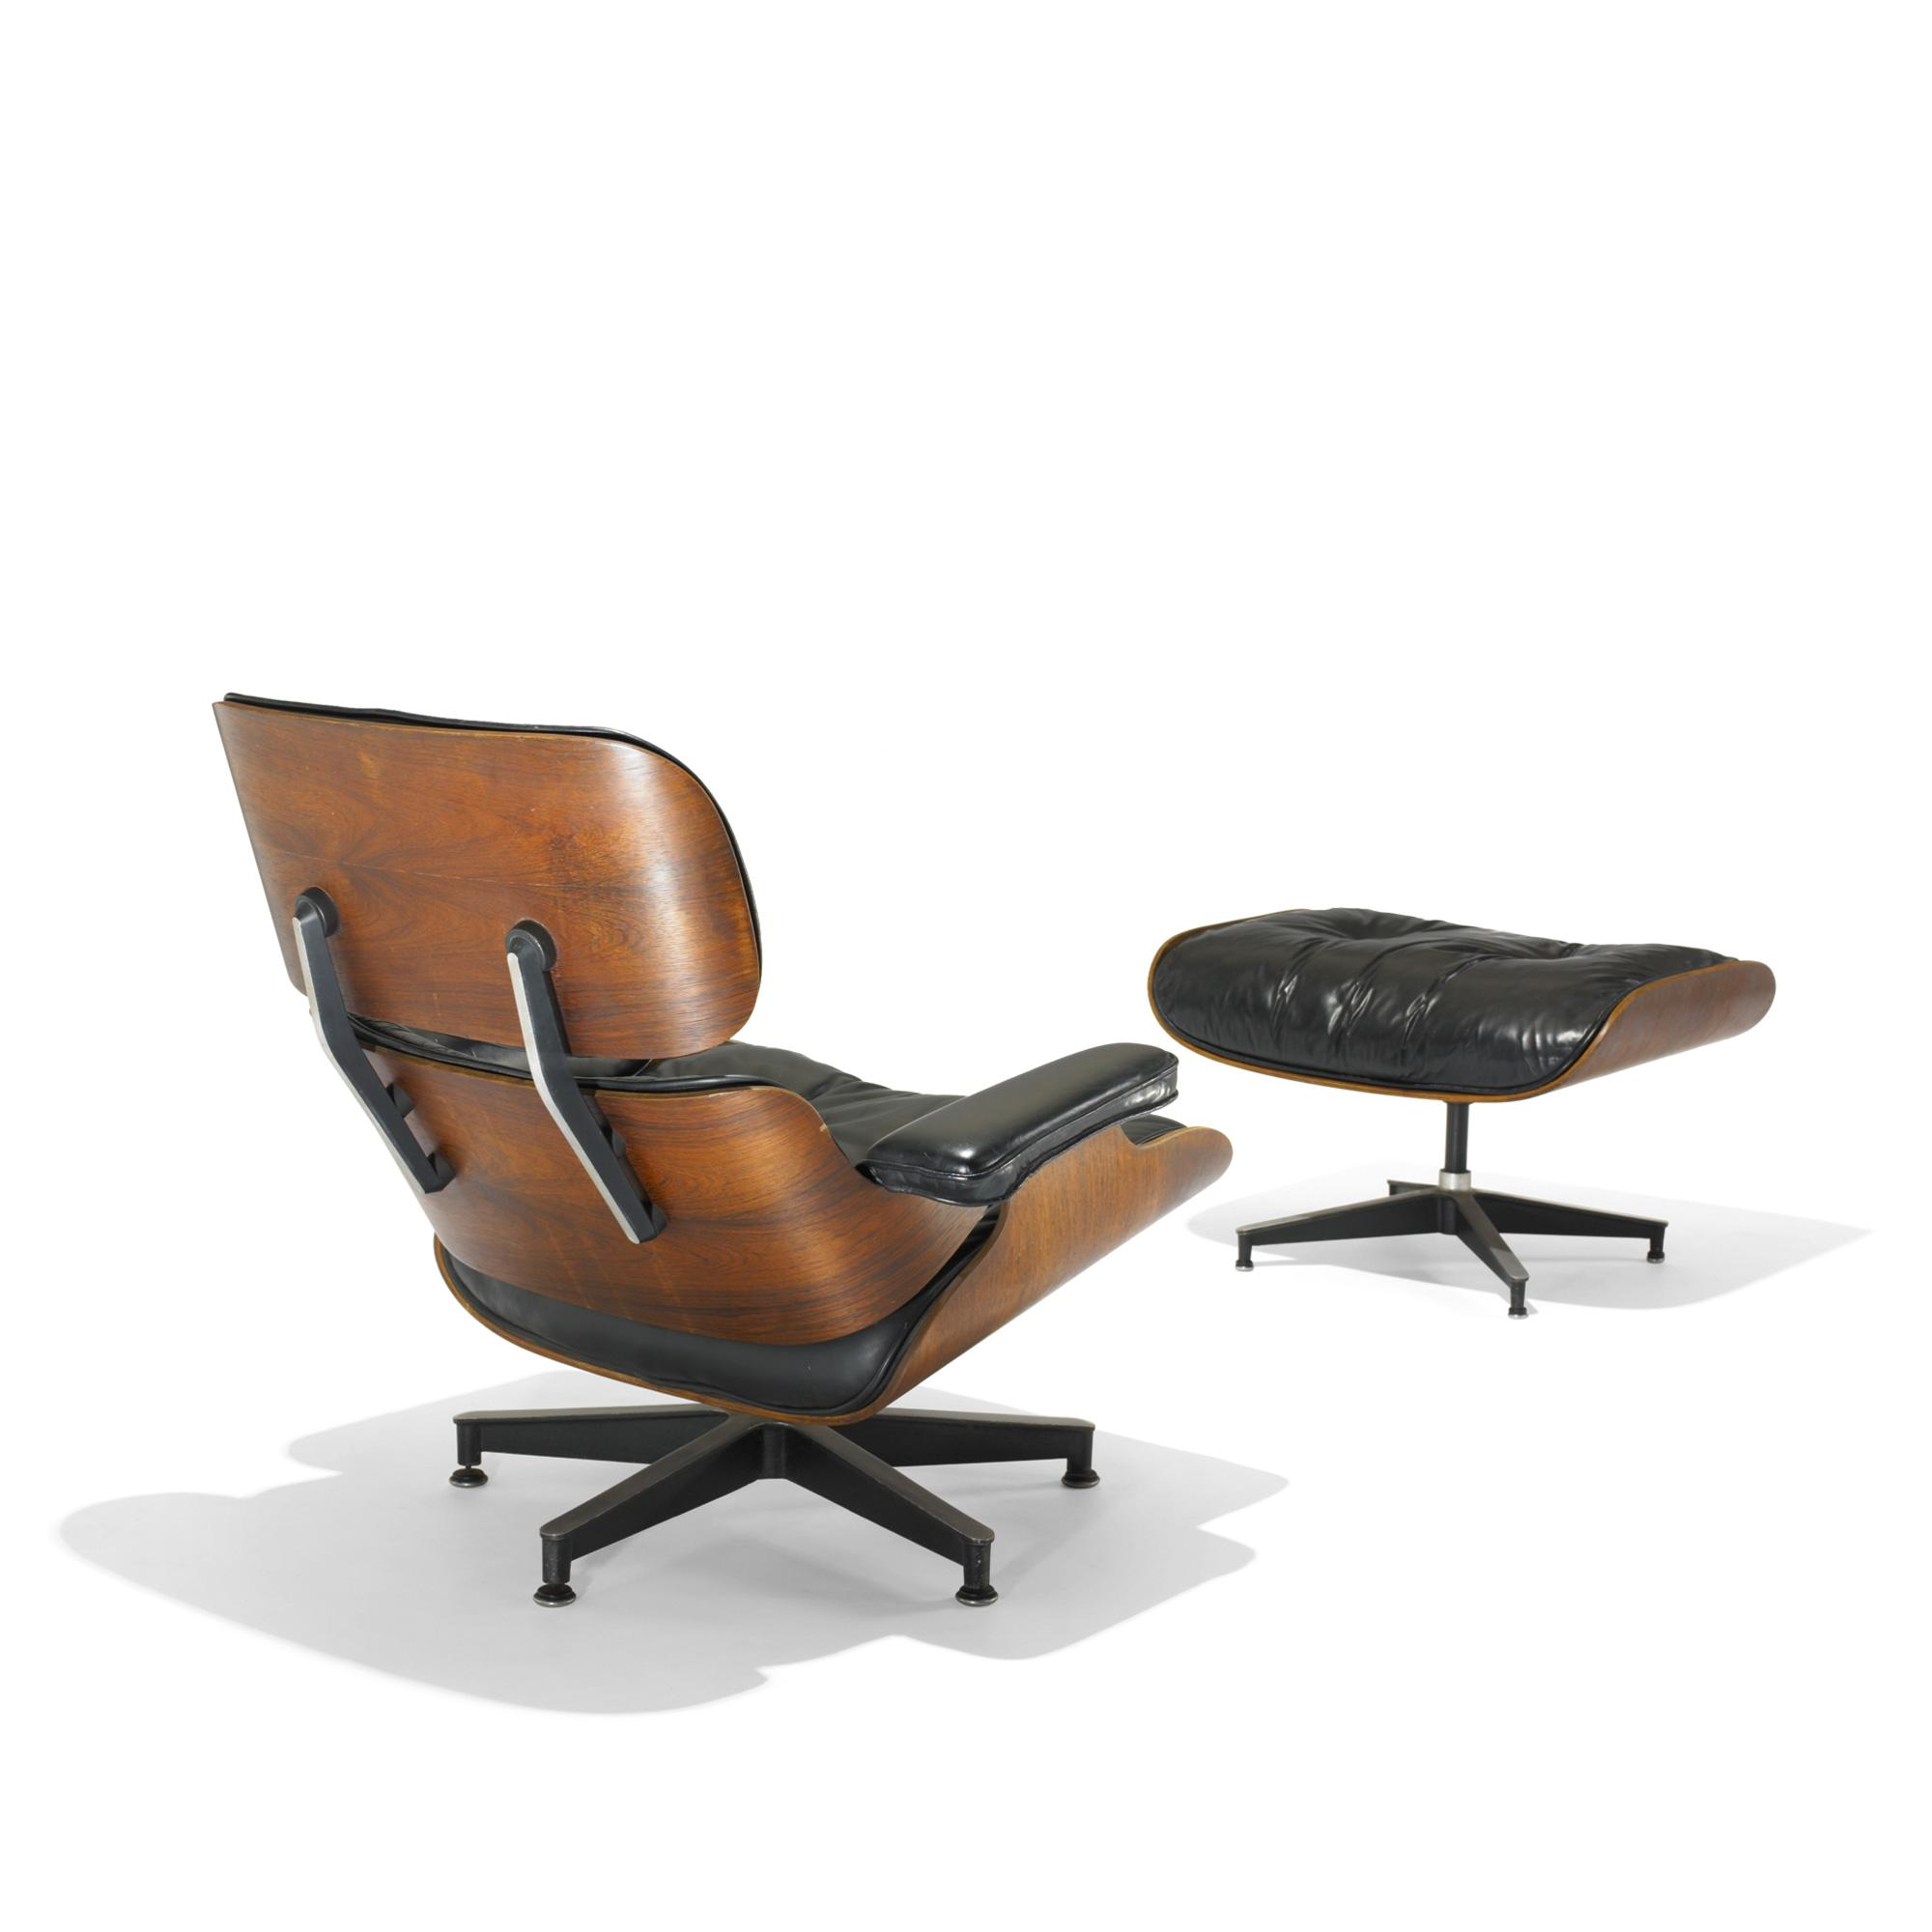 Magnificent Charles And Ray Eames 670 Lounge Chair And 671 Ottoman Dailytribune Chair Design For Home Dailytribuneorg